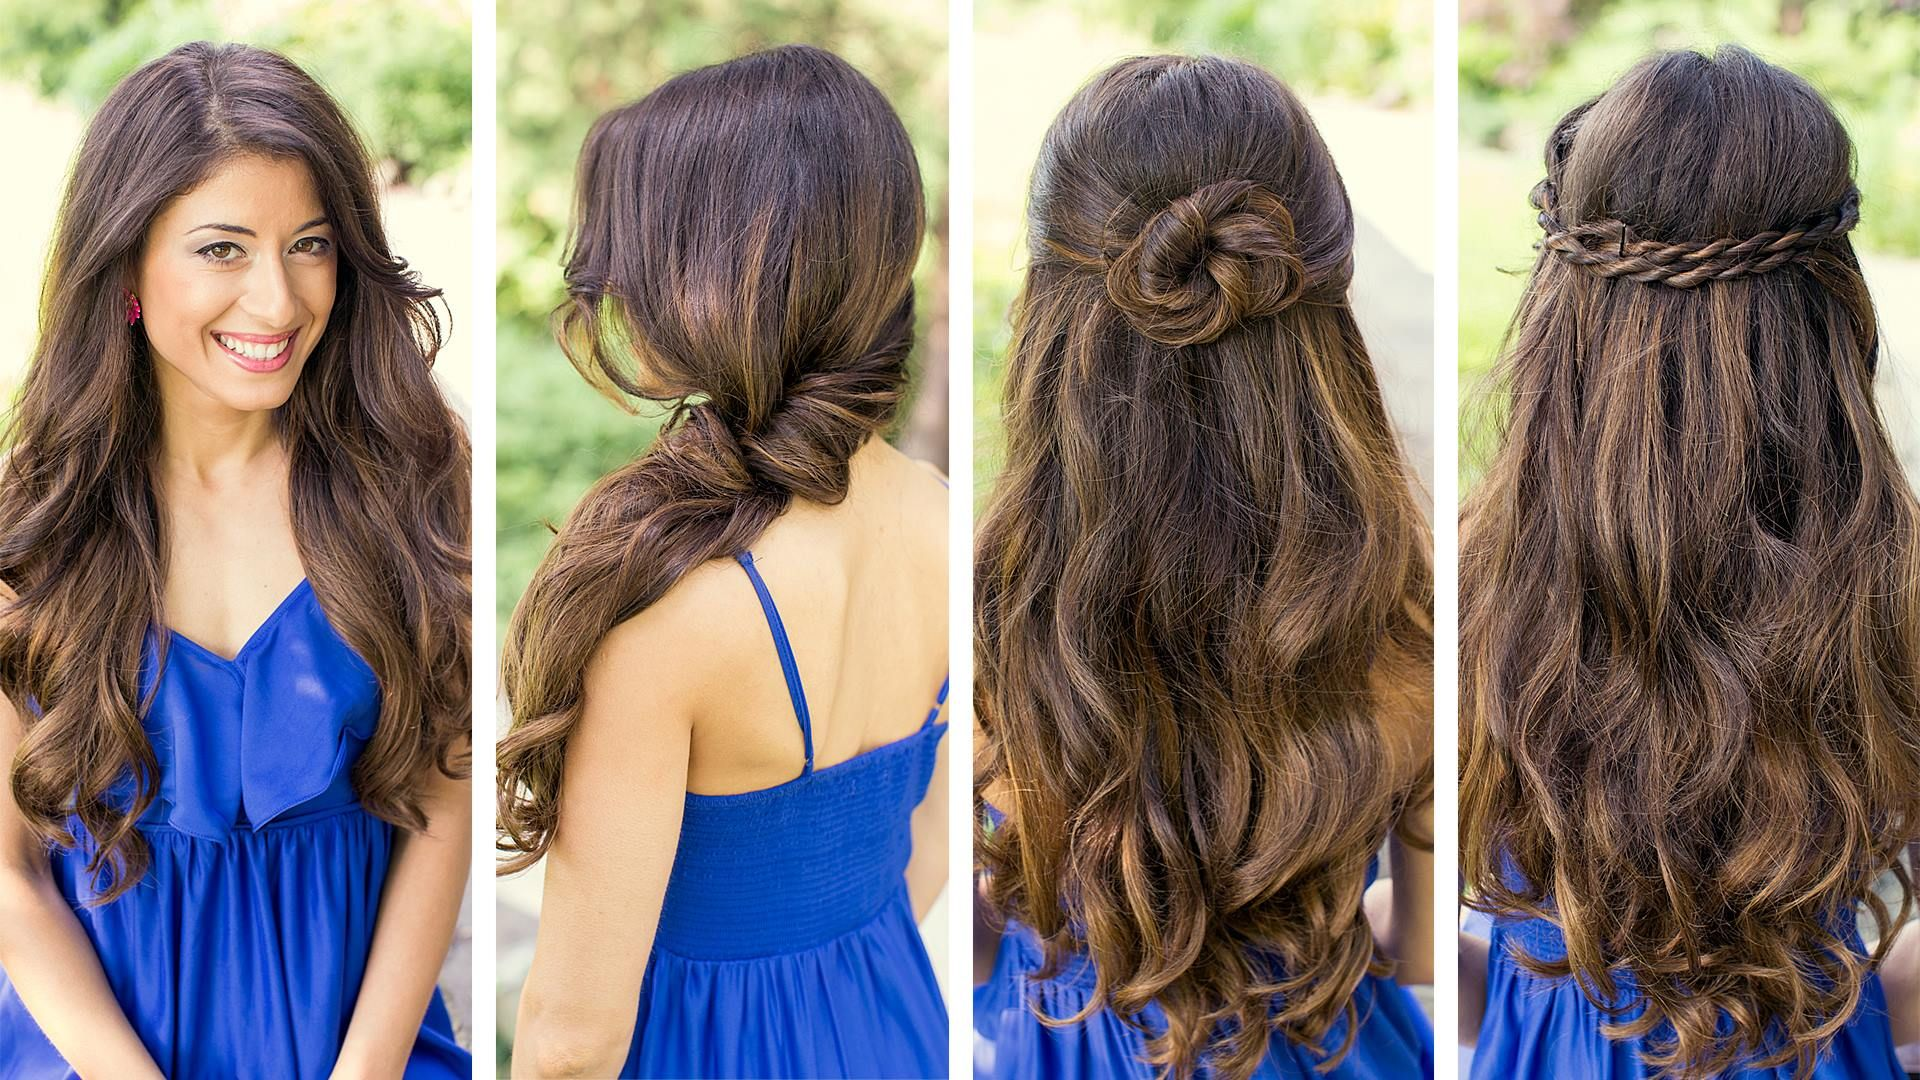 Pin By Luxy Hair On Hair Tutorials How To Long Hair Indian Girls Long Hair Styles Easy Hairstyles